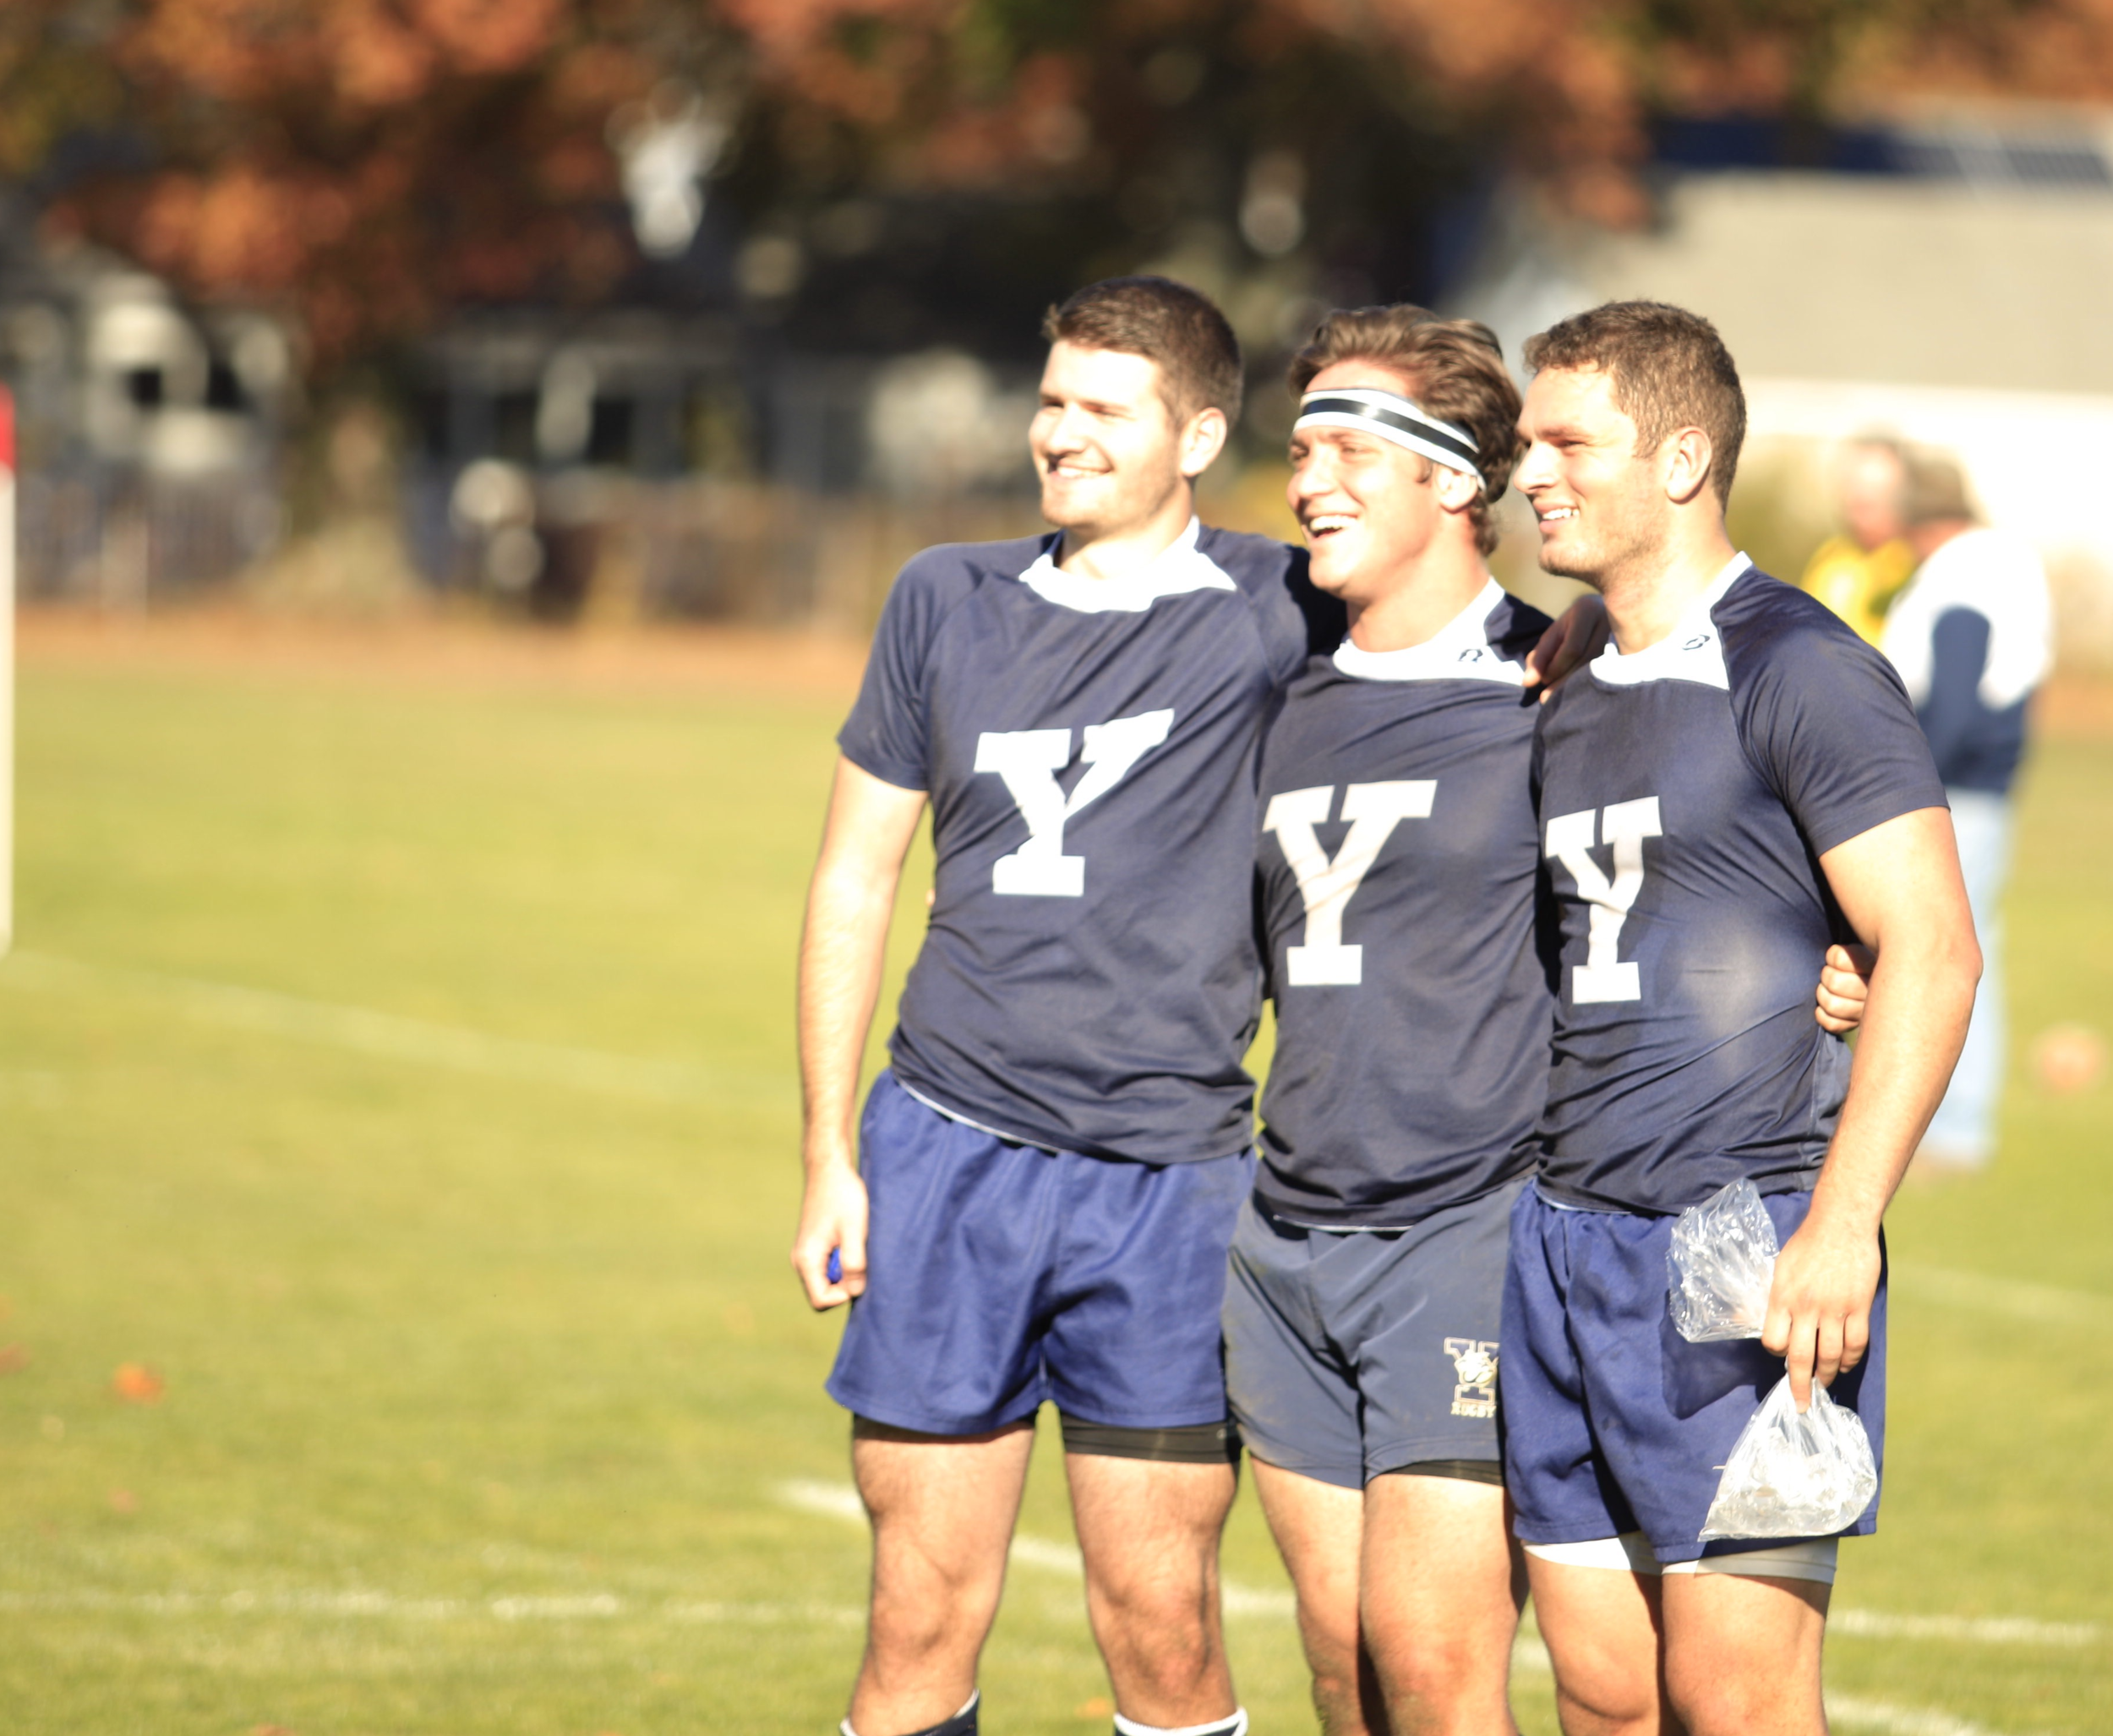 Alex Petrillo (left), Bryan Herbert (centre) and Charlie Hill (right) enjoy a moment after the Columbia victory. Bryan and Charlie were elected Club President and Club Captain respectively for the 2017-18 season.